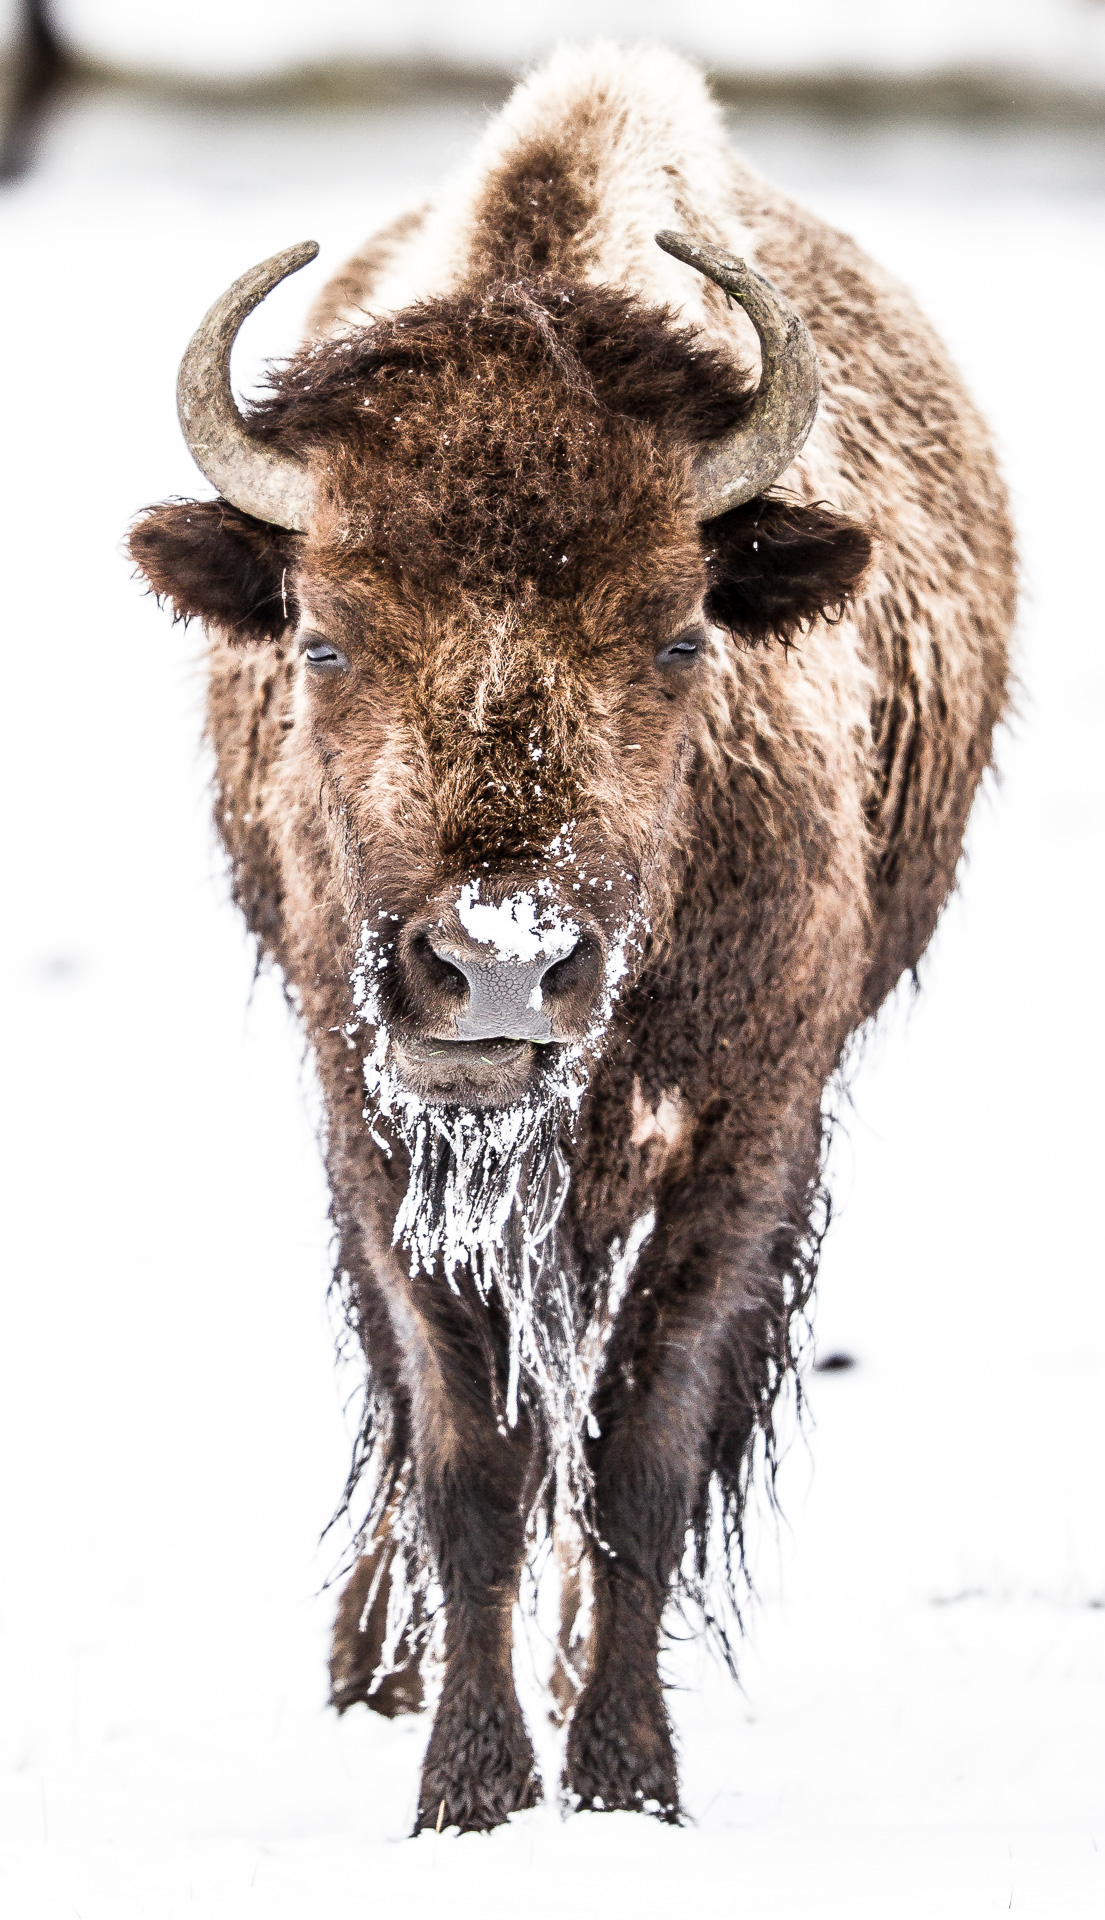 Bison snowy head on Canon 200mm f2 lens Yellowstone National Park WY Sparky Stensaas-0075